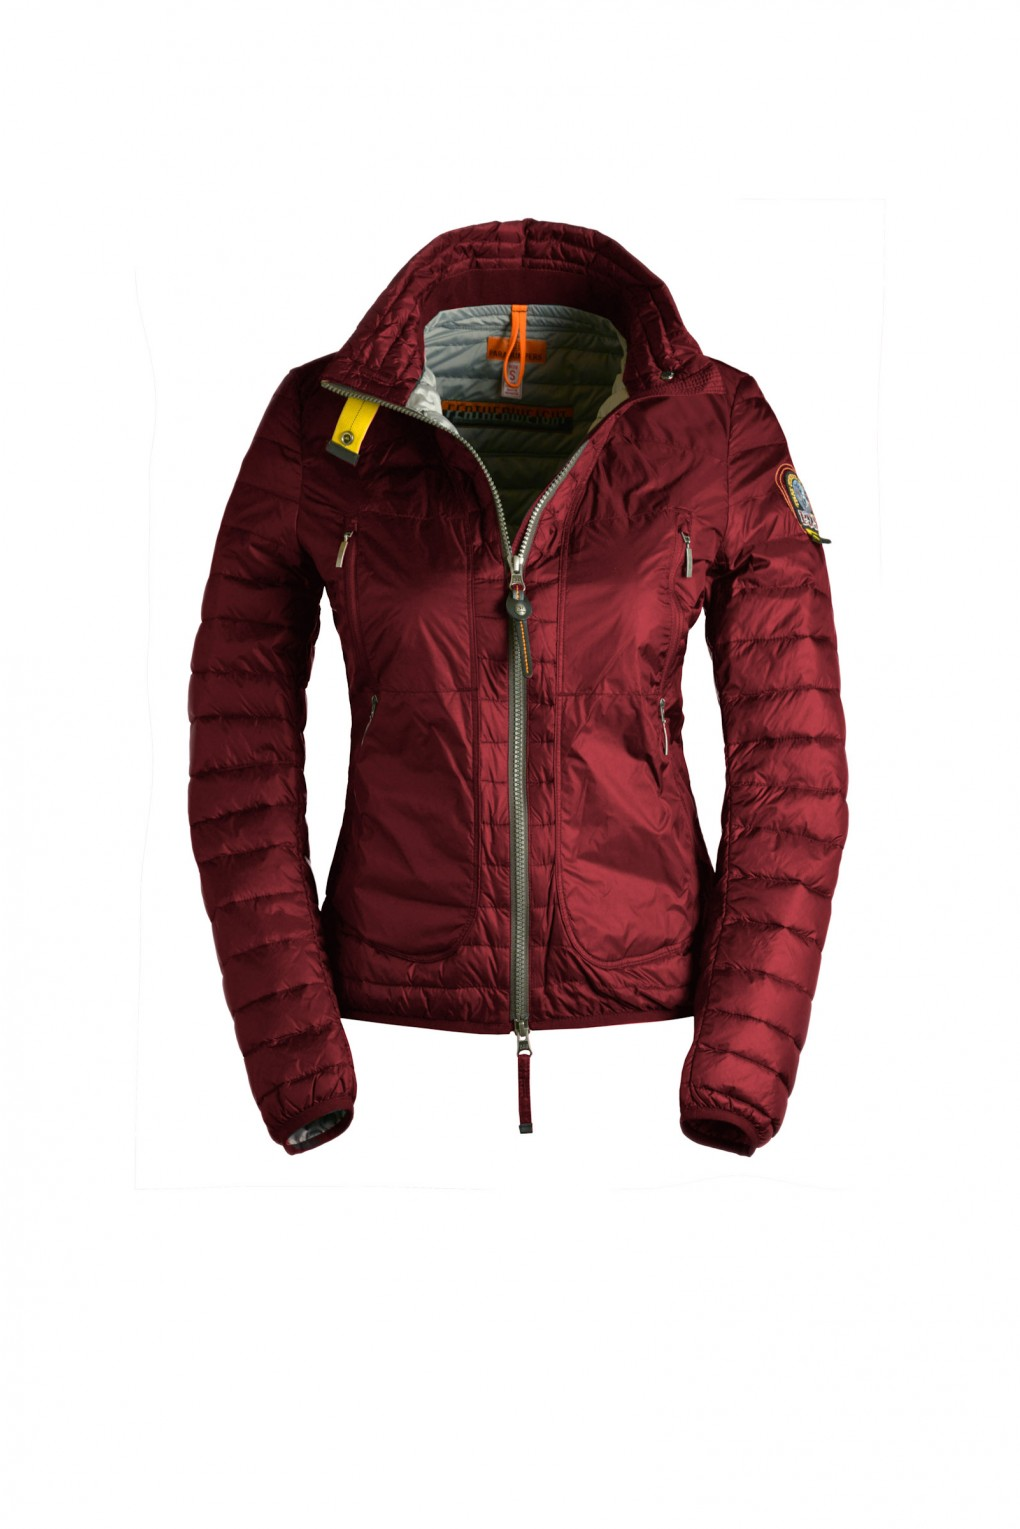 parajumpers GLORIA woman outerwear Red